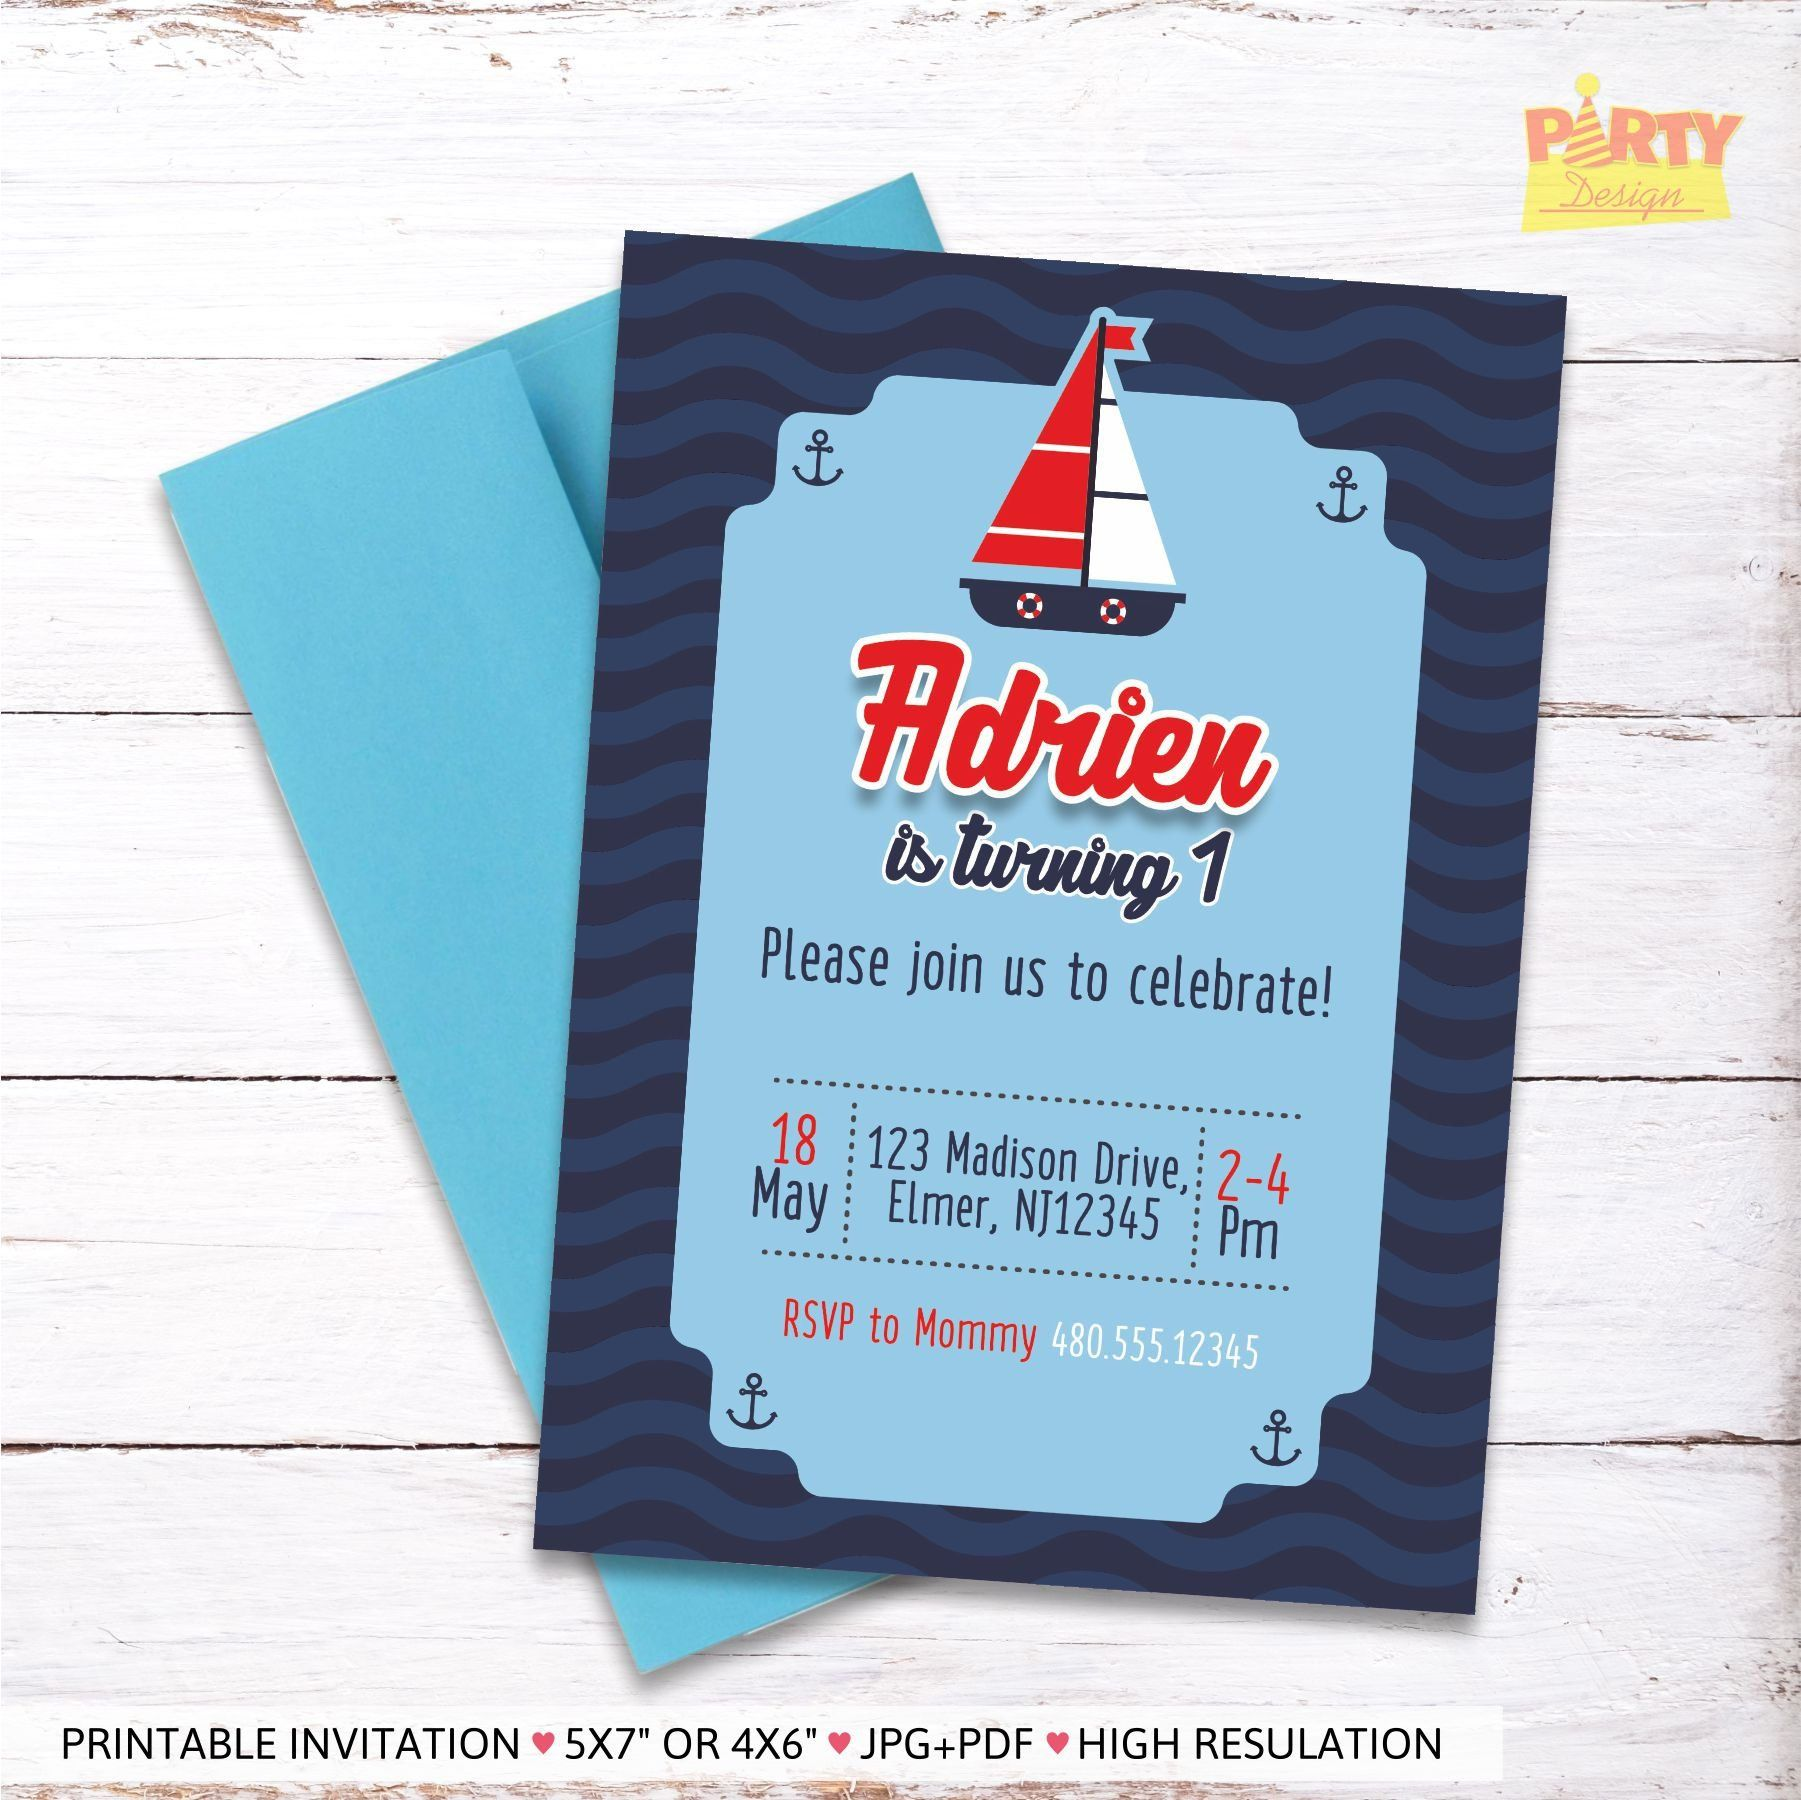 Nautical Party Invitation DIGITAL FILE Birthday First By PartyyDesign On